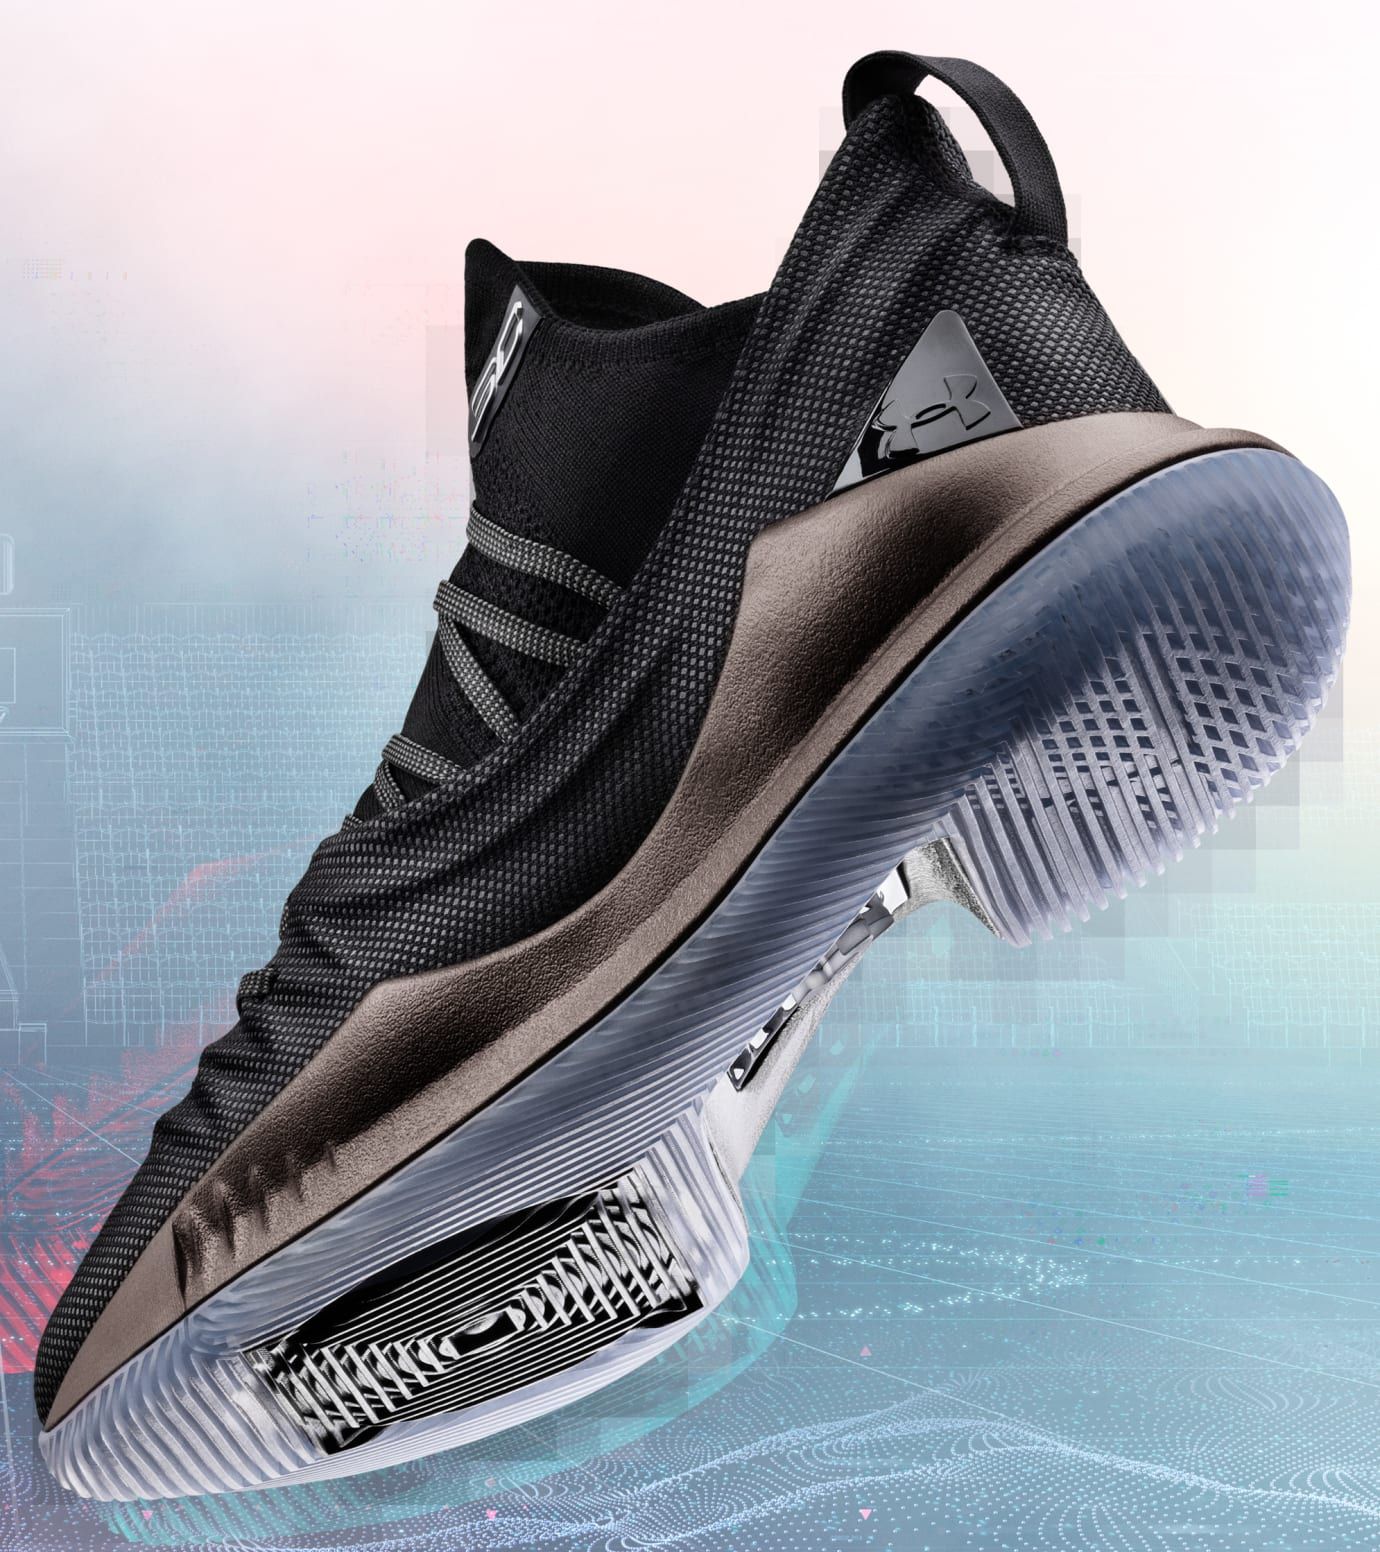 4e58f4f2d01 Image via Under Armour Under Armour Curry 5  Pi Day  (Outsole)